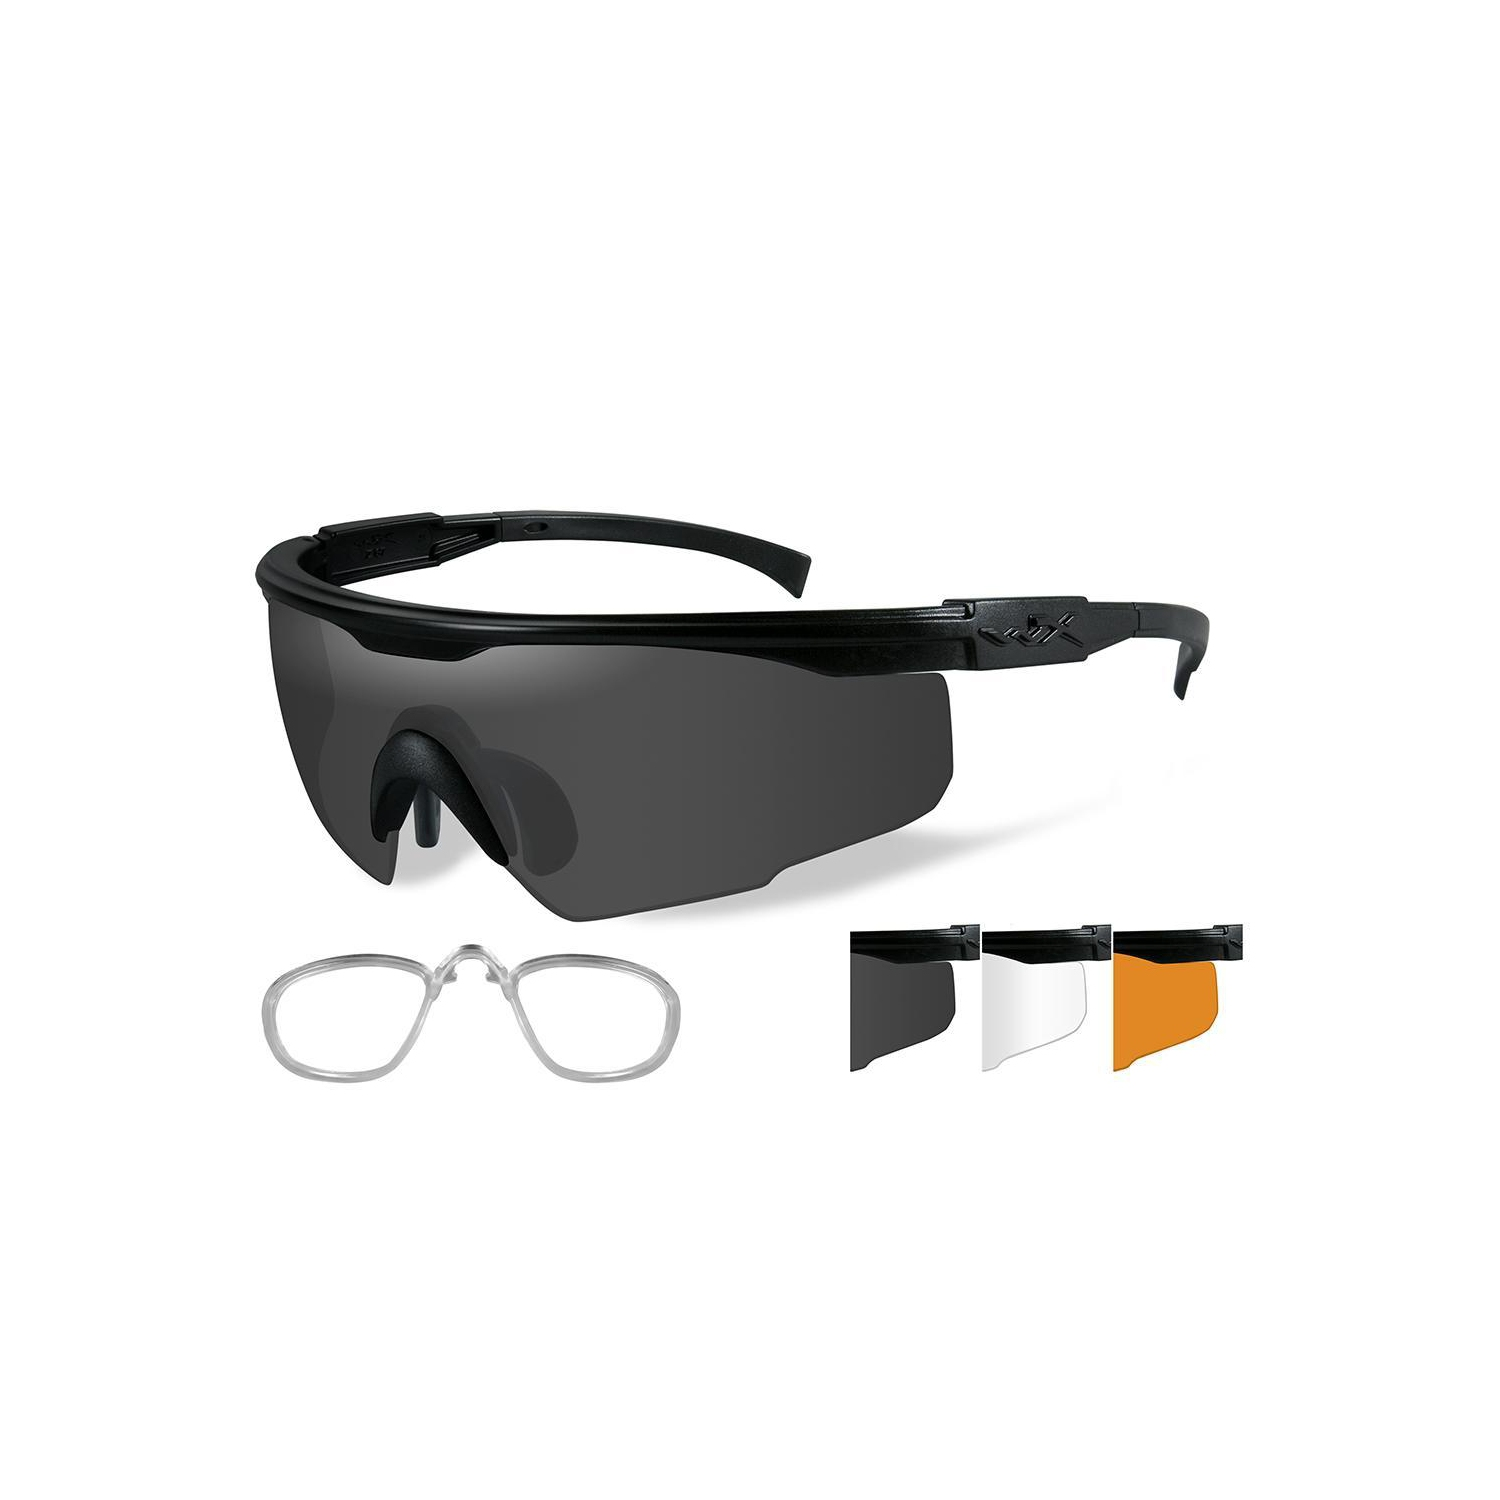 133511f0974 Wiley X PT-1 Sunglasses - Smoke Grey-Clear-Rust Lens - Matte Black Frame w- Rx Insert - Online Only